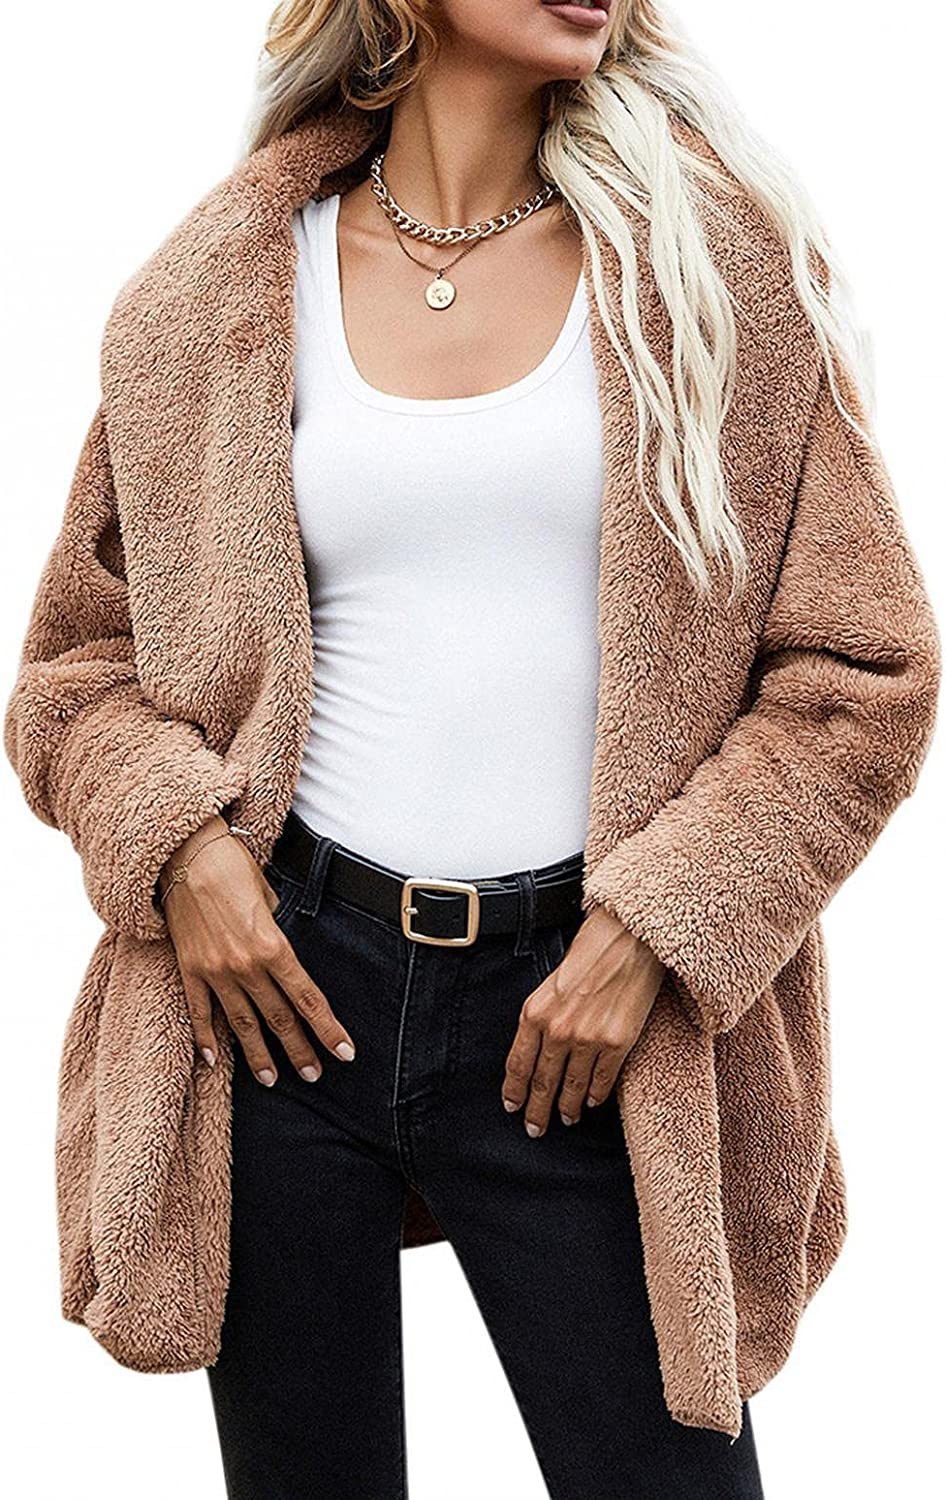 Misaky Womens Winter Casual Classic Fuzzy Fleece Jacket Open Front Hooded Coats Outwear With Pockets